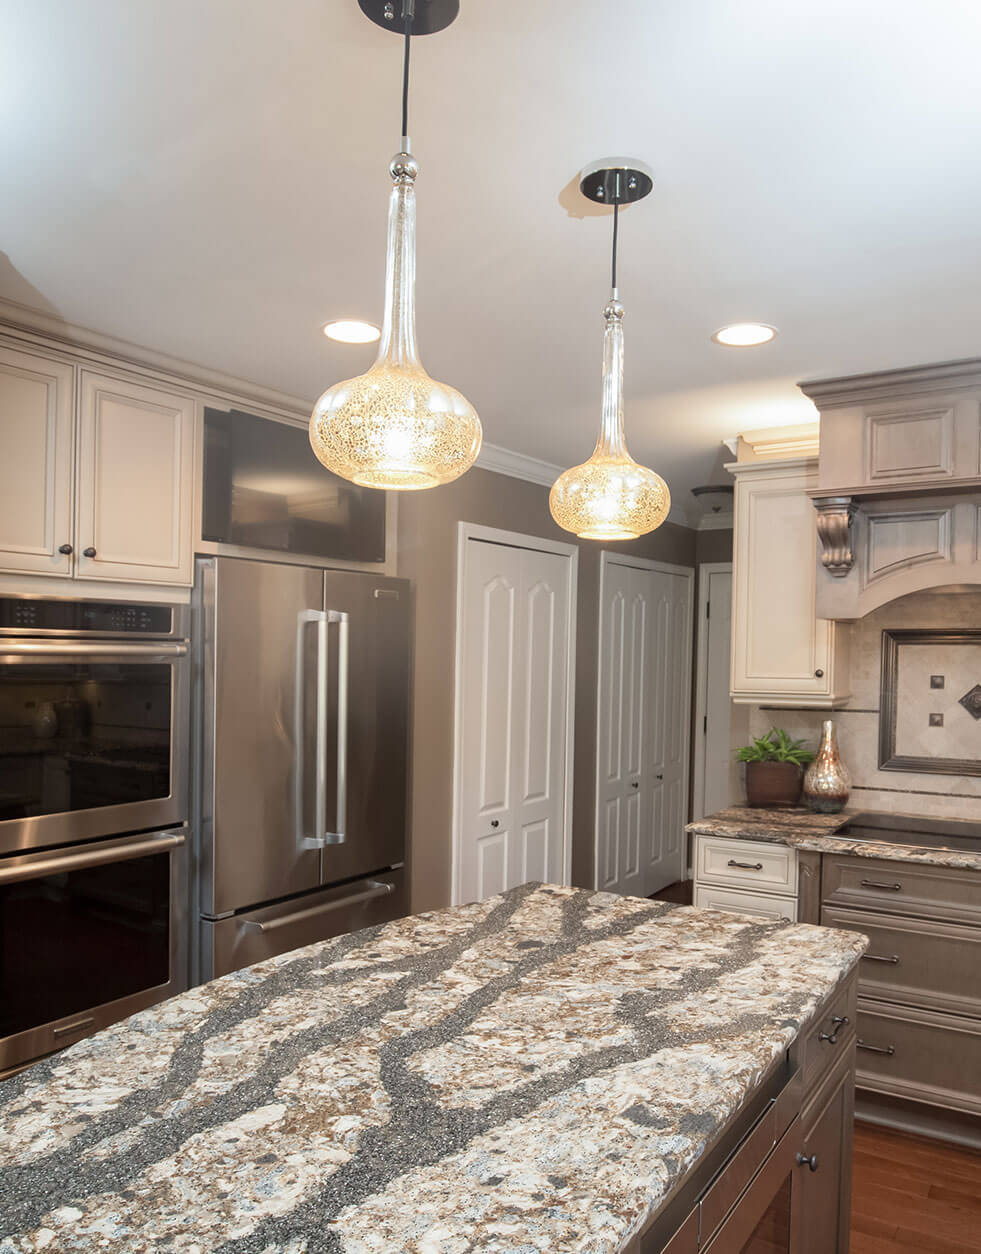 Unique white granite kitchen countertop with streaks of dark gray, lit from above with 2 contemporary glass lighting fixtures.